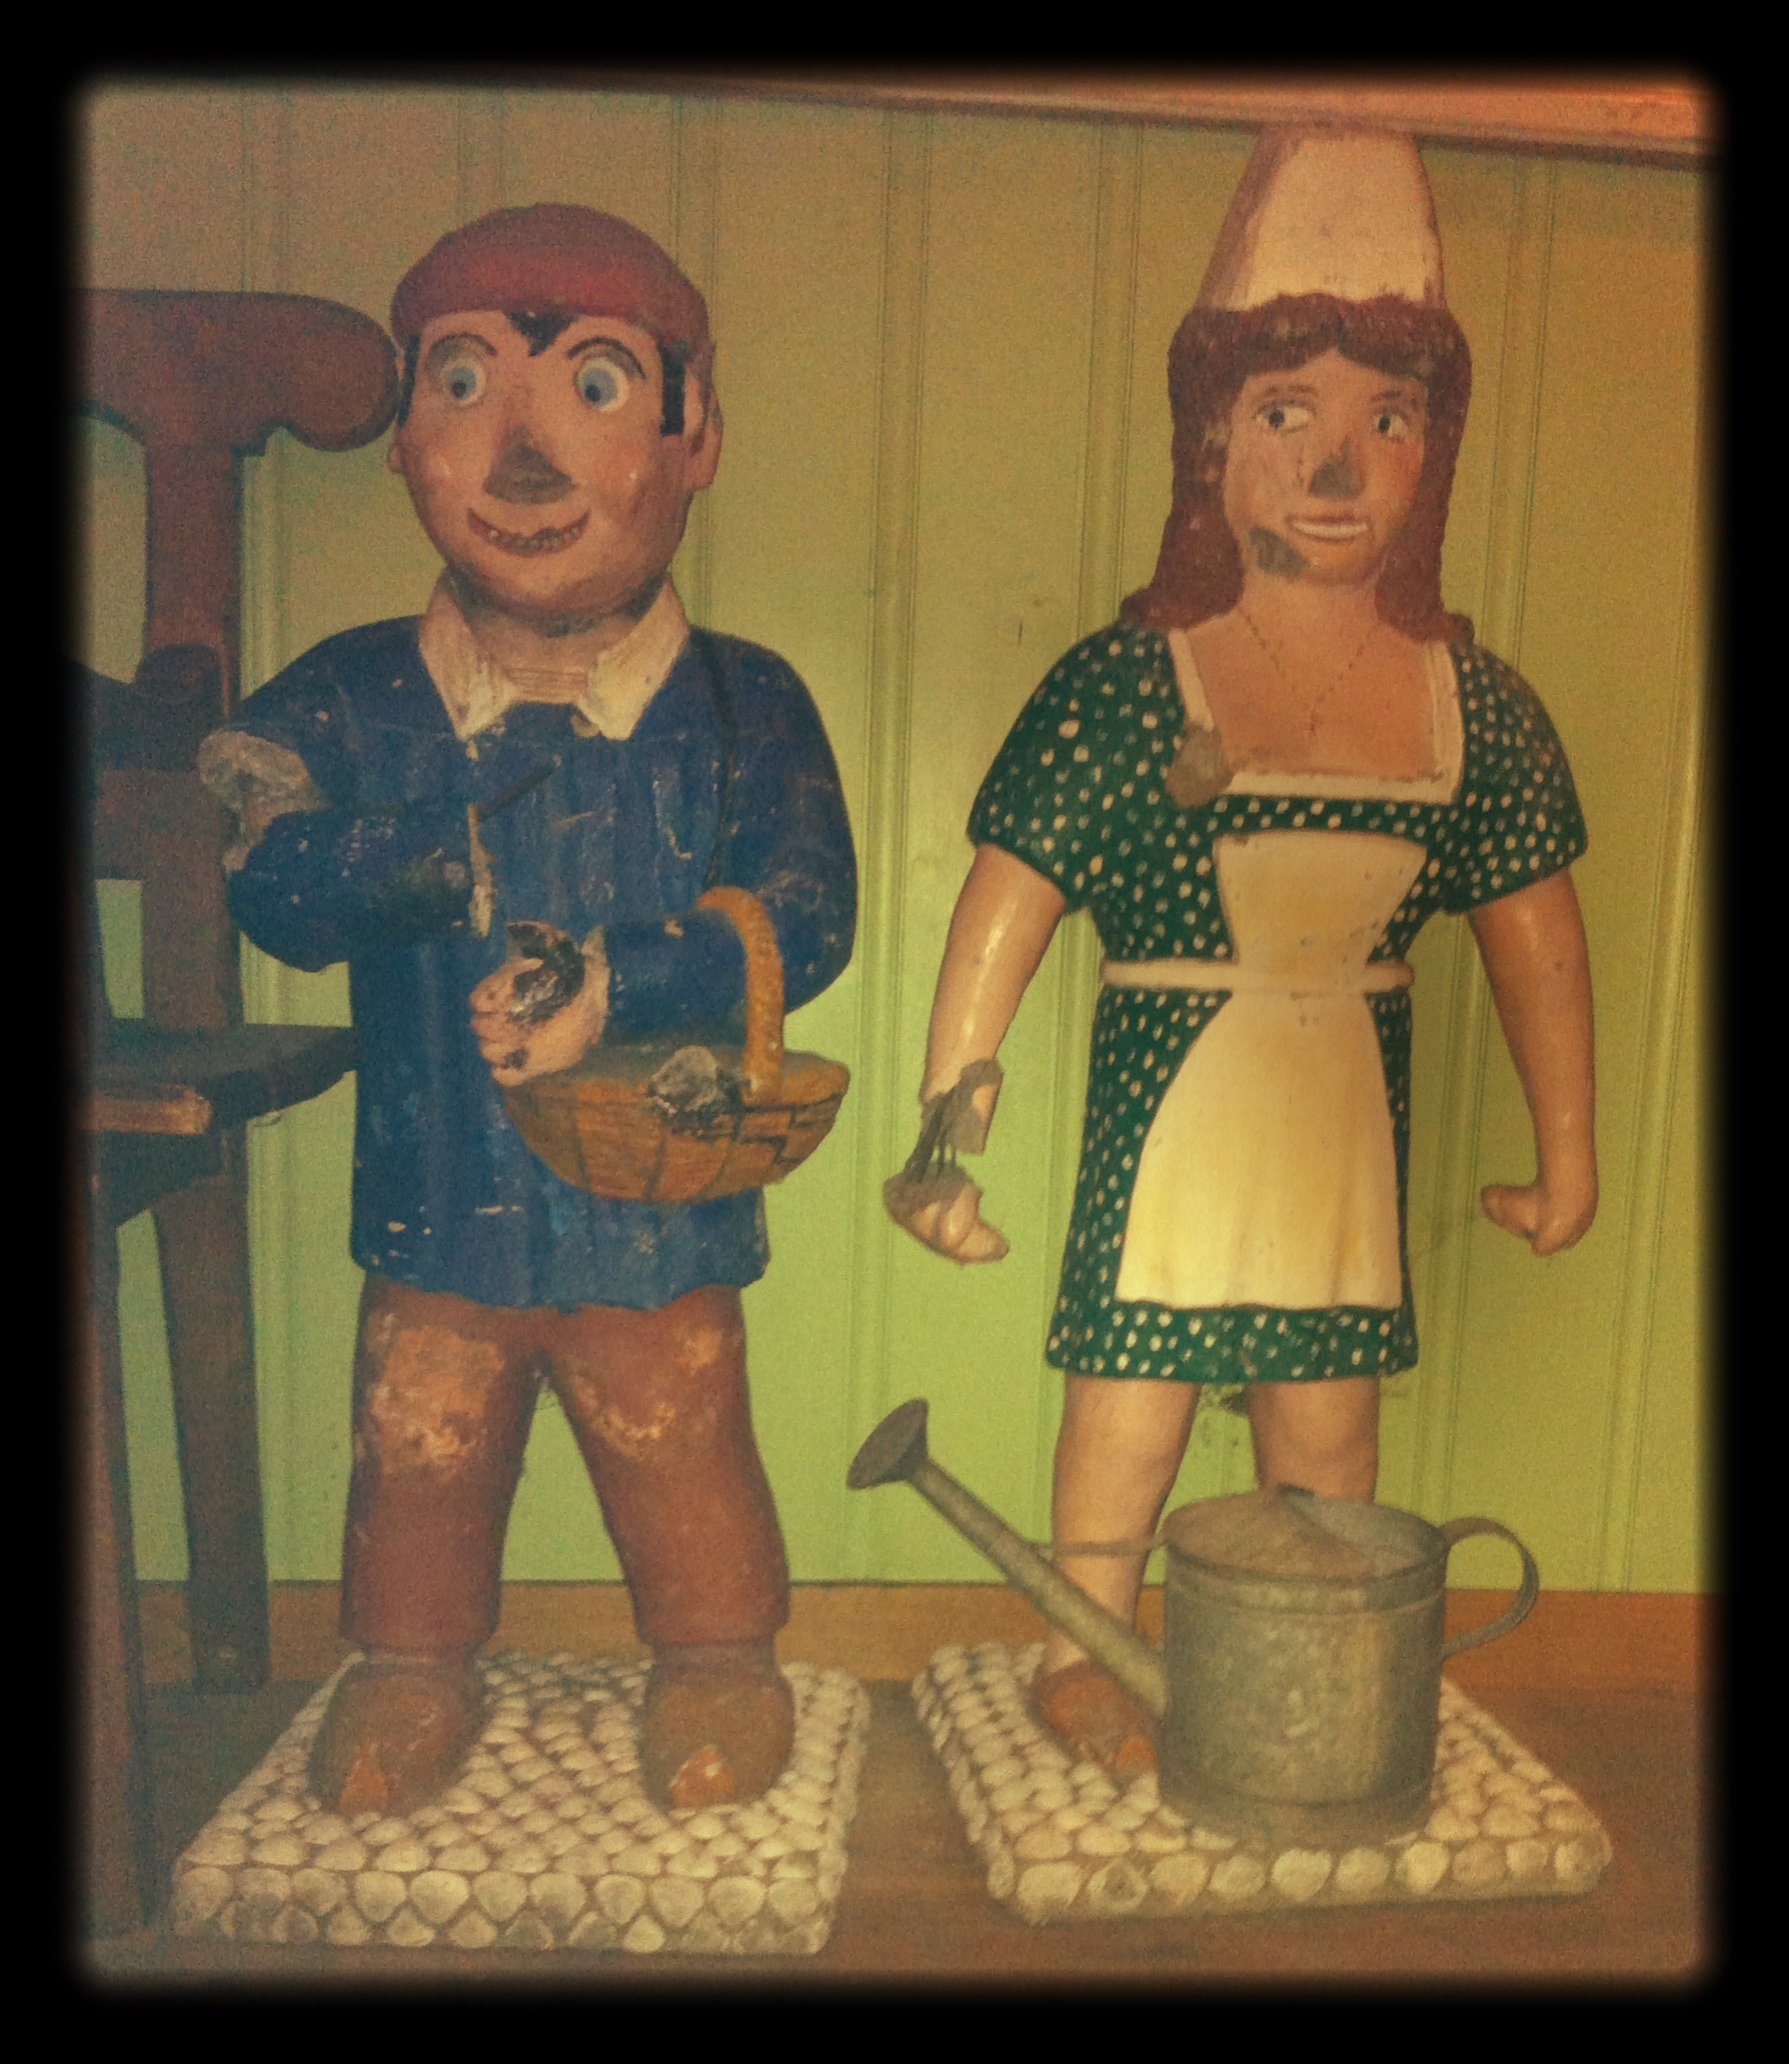 Scary_little_cement_boy_and_girl